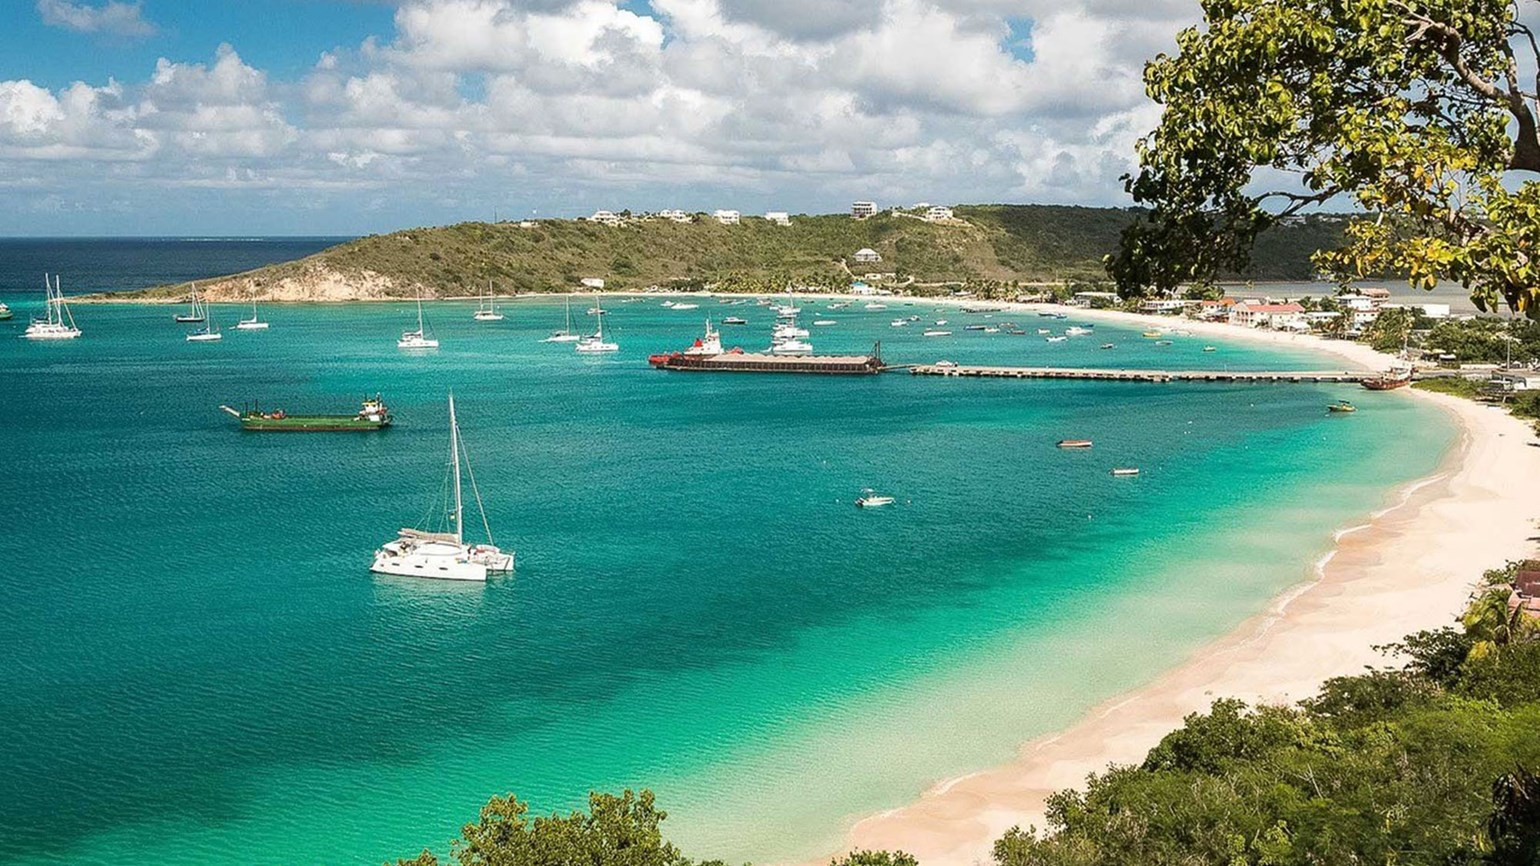 Anguilla reopening to visitors May 25 after Covid-related lockdown